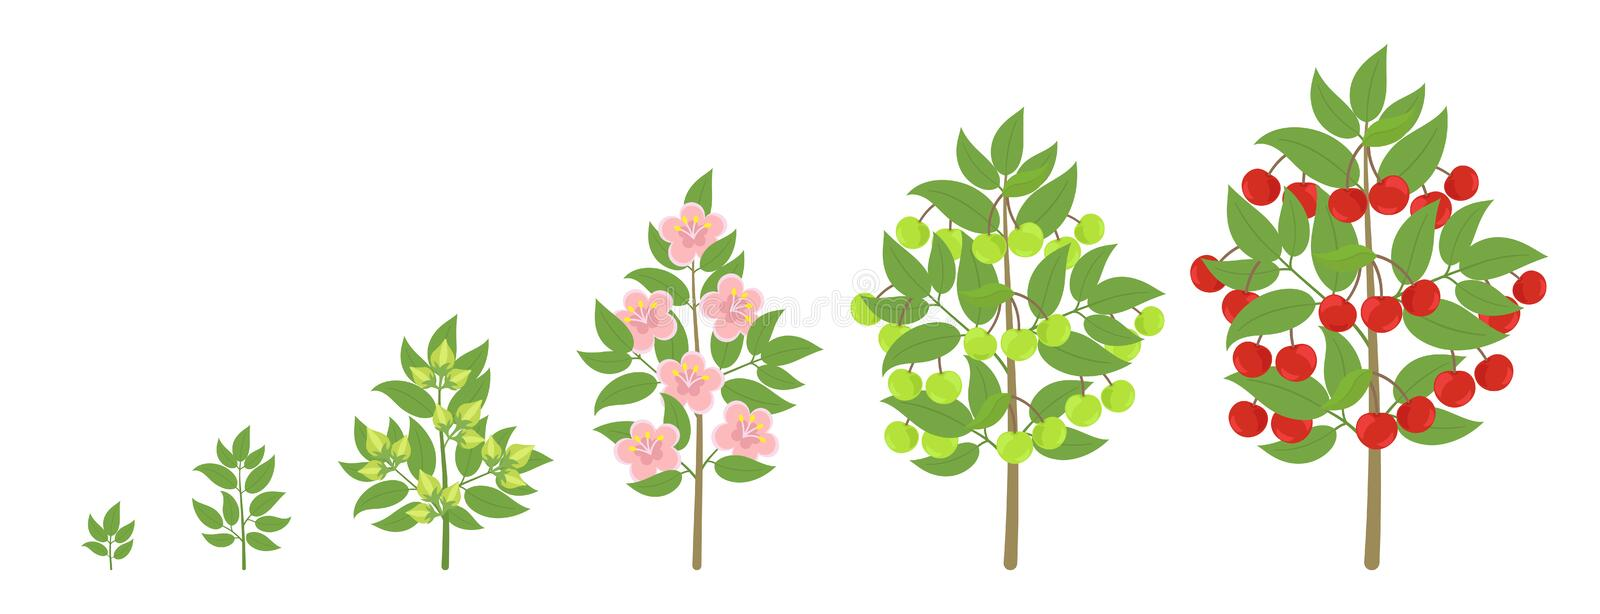 Cherry tree growth stages. Ripening period progression. Cherries fruit tree life cycle animation plant seedling. Sweet cherry. Cherry tree growth stages vector illustration